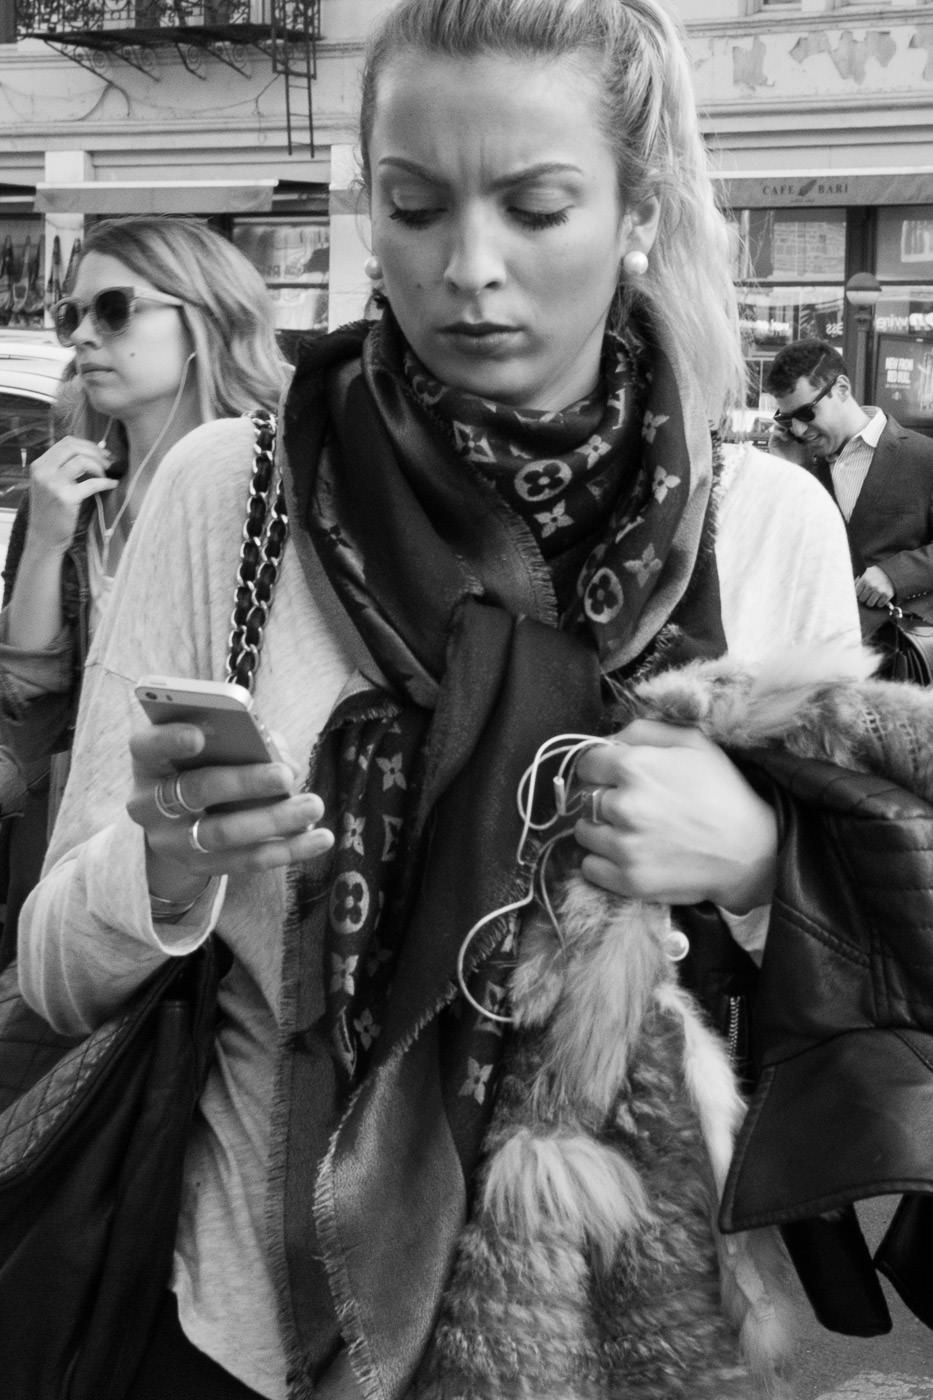 Street photography: Black and white portrait of ponytailed woman checking her phone